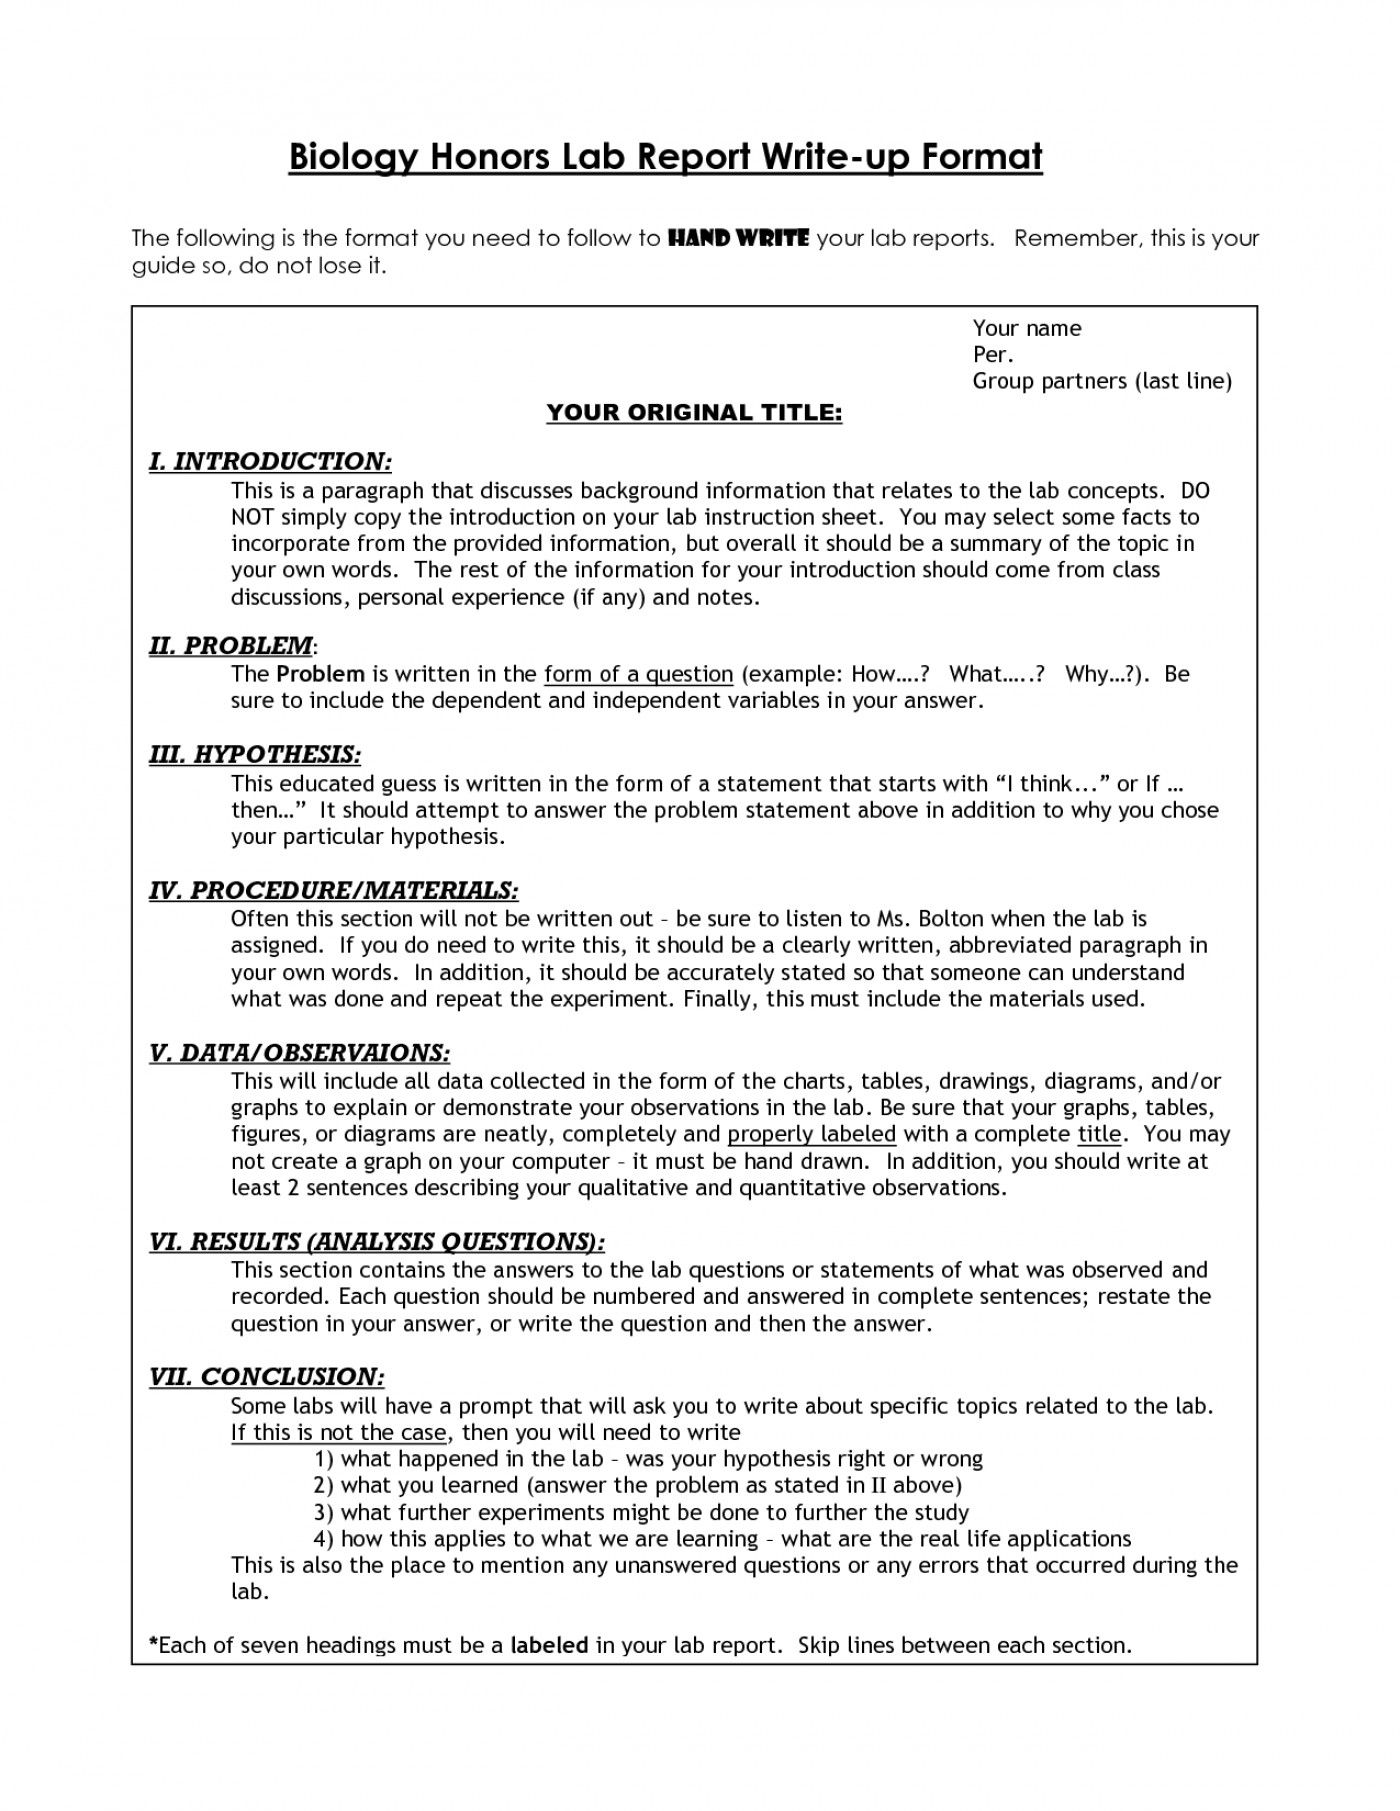 Biology Lab Report Template Awesome Ideas Sample Example Biology Lab Report Template In 2021 Lab Report Template Lab Report Biology Labs